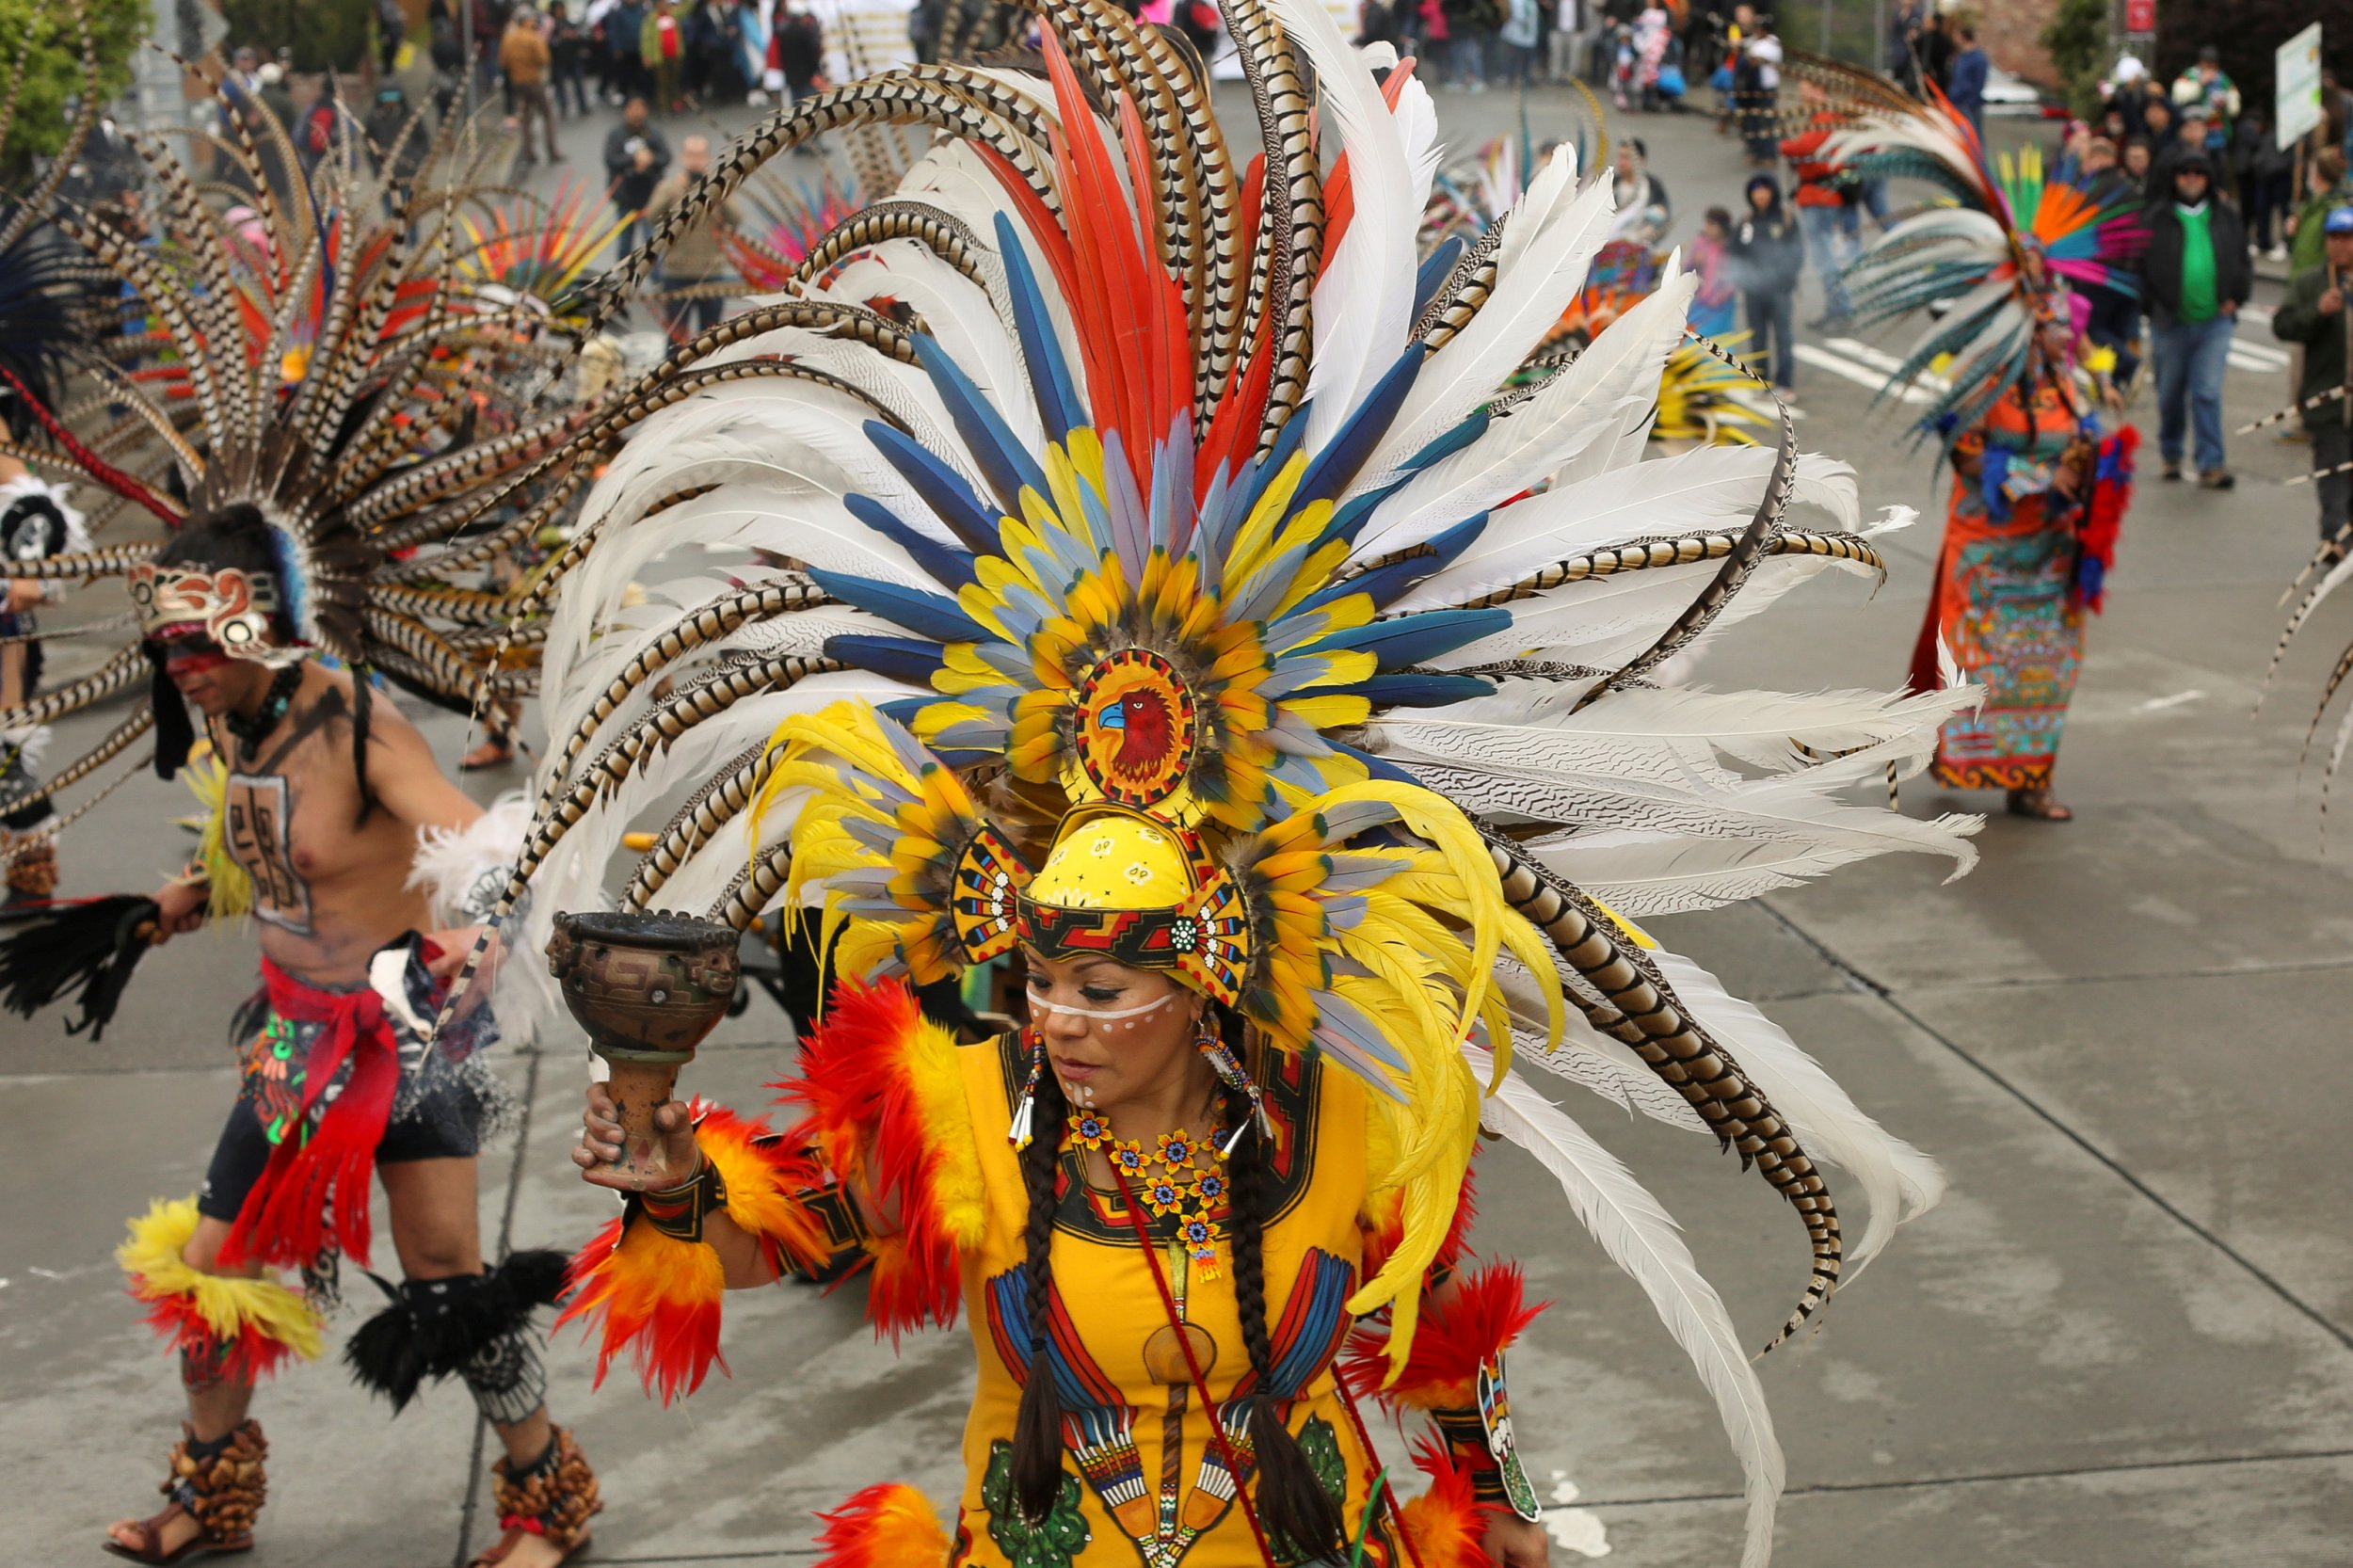 Traditional Aztec dance